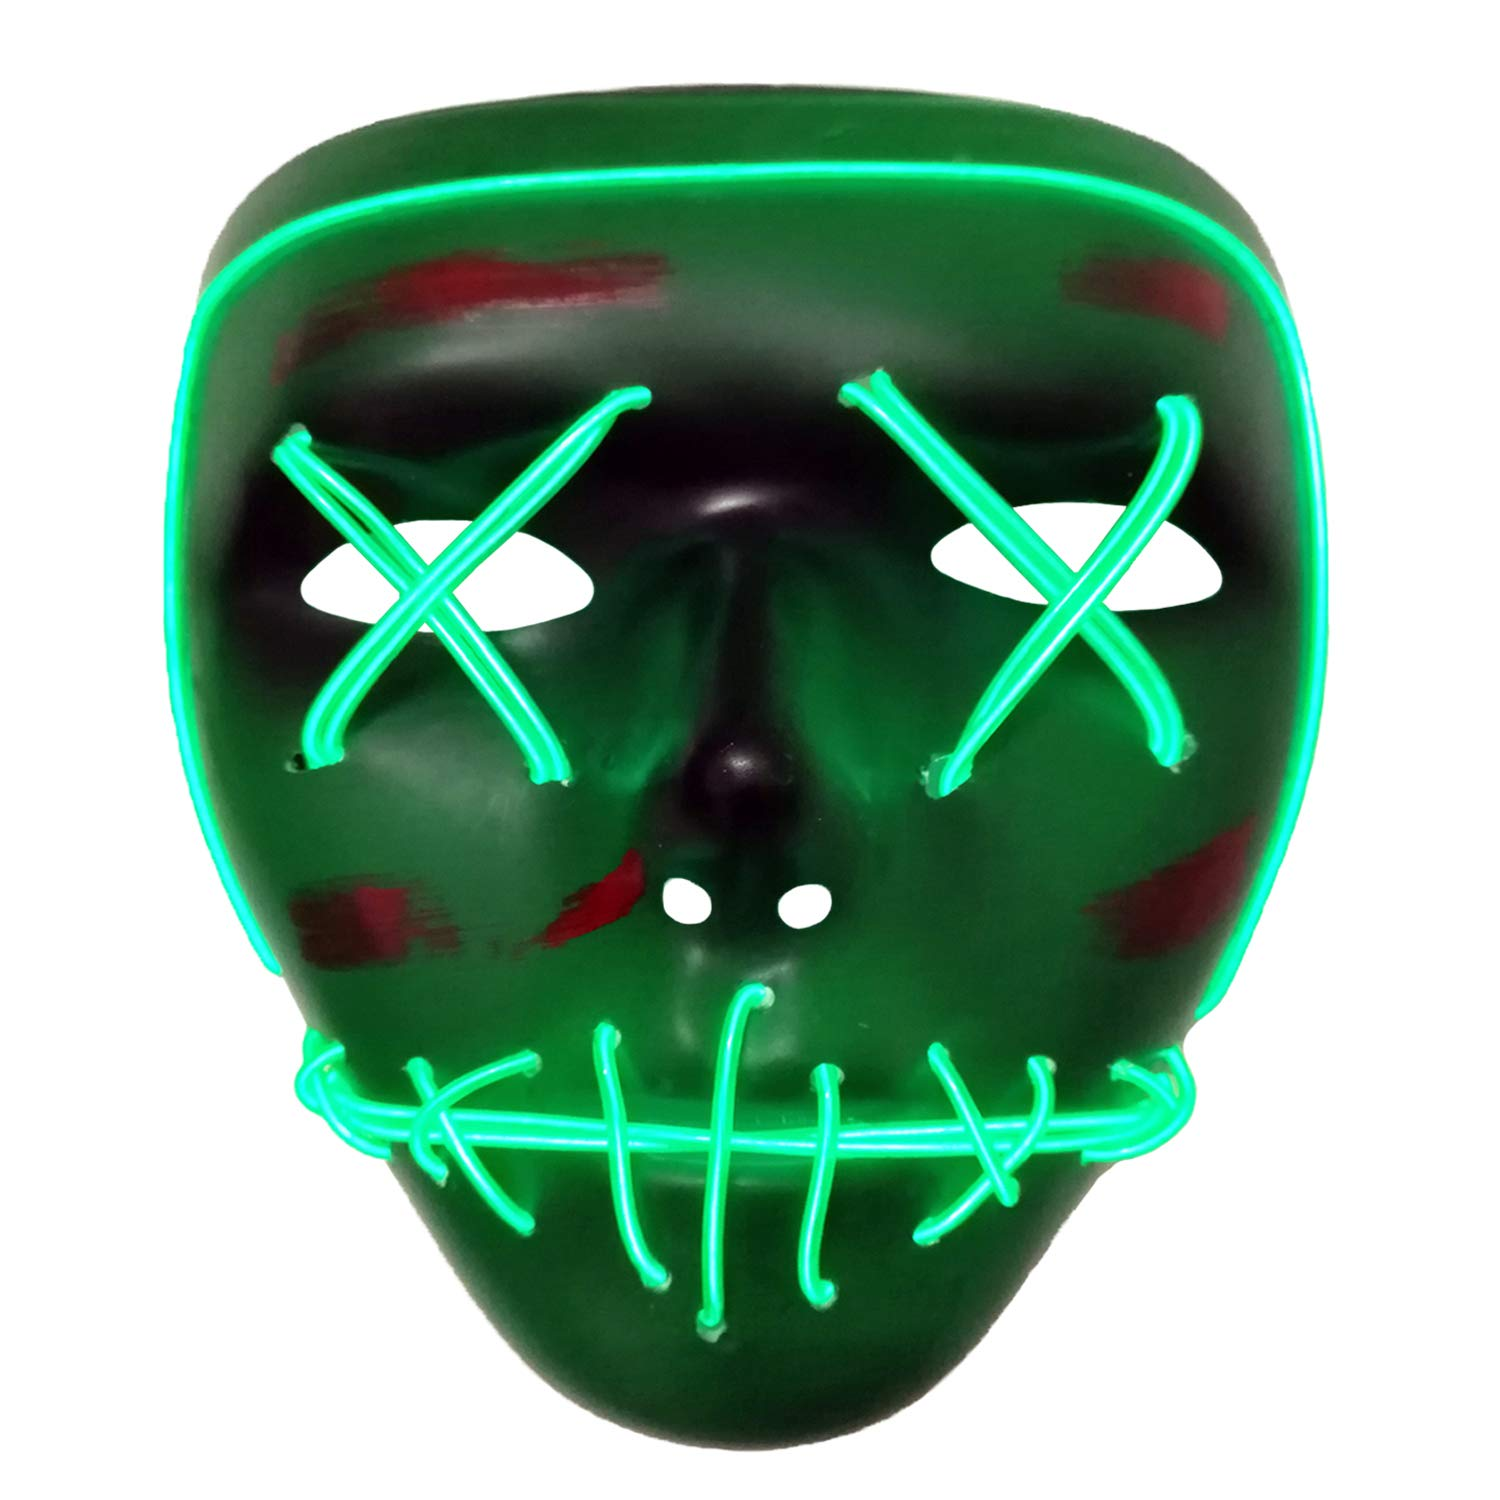 AUHOO Halloween Masks for Kids Light up Purge Mask LED Power Mask Scary Mask Rave Halloween Costumes